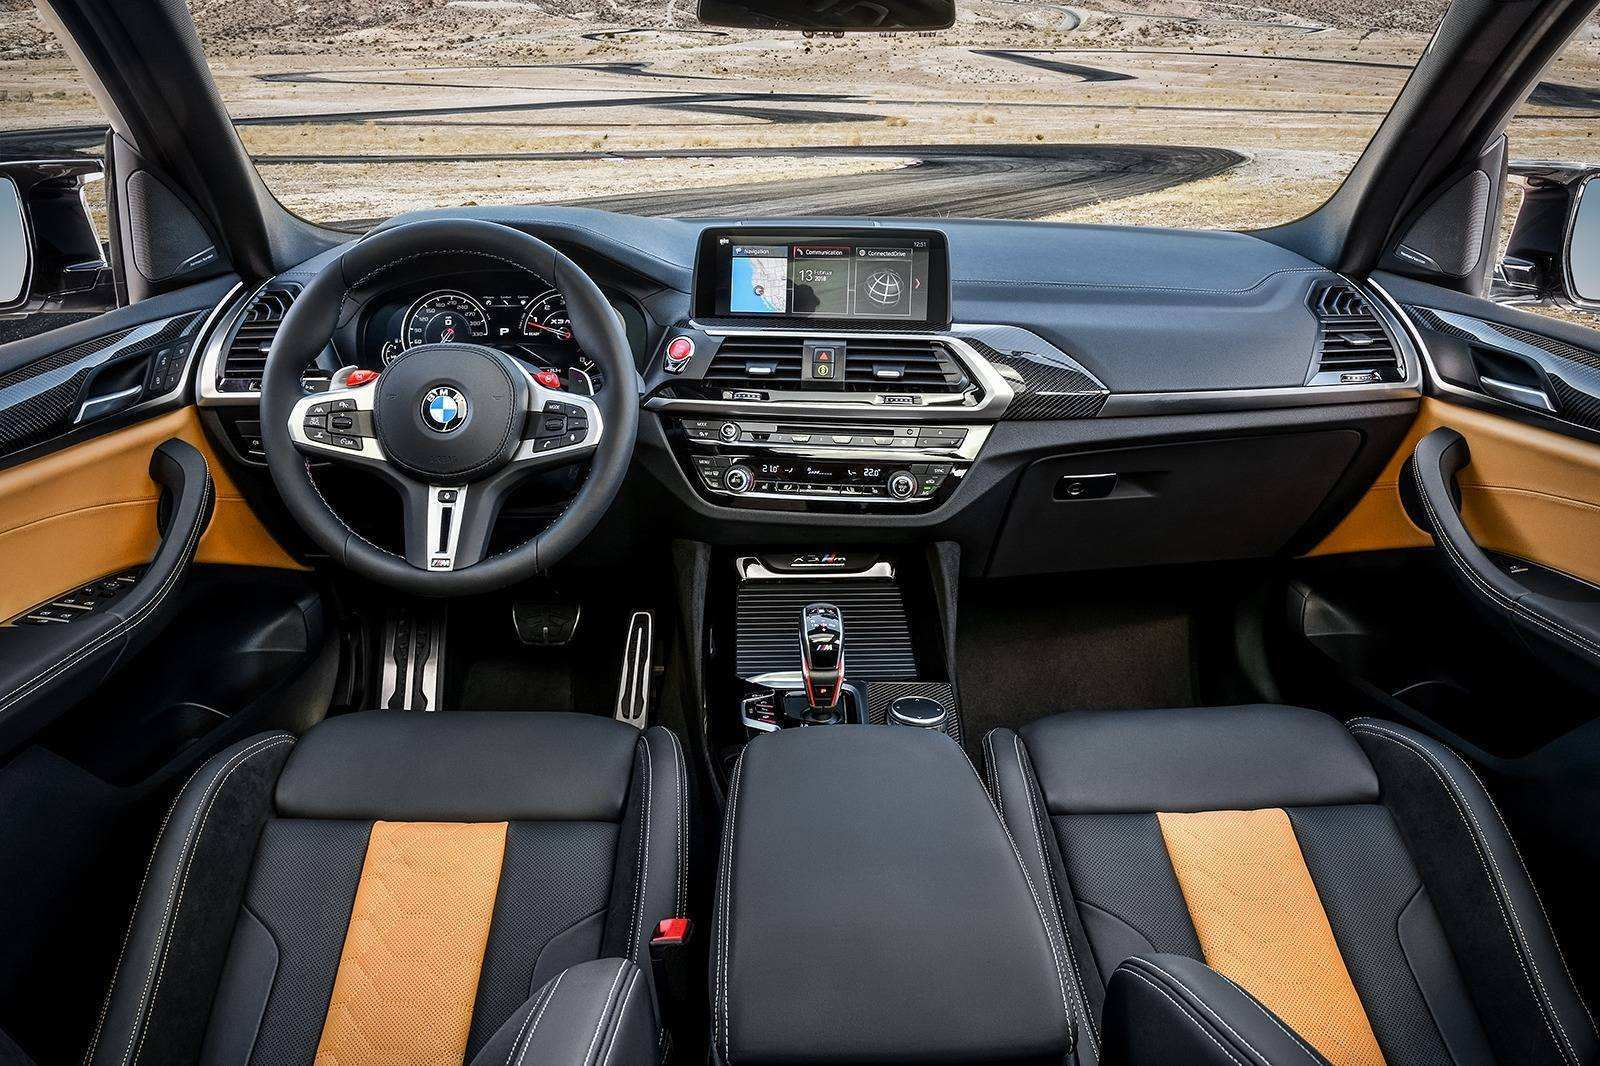 37 Best Review BMW Releases 2020 Picture with BMW Releases 2020